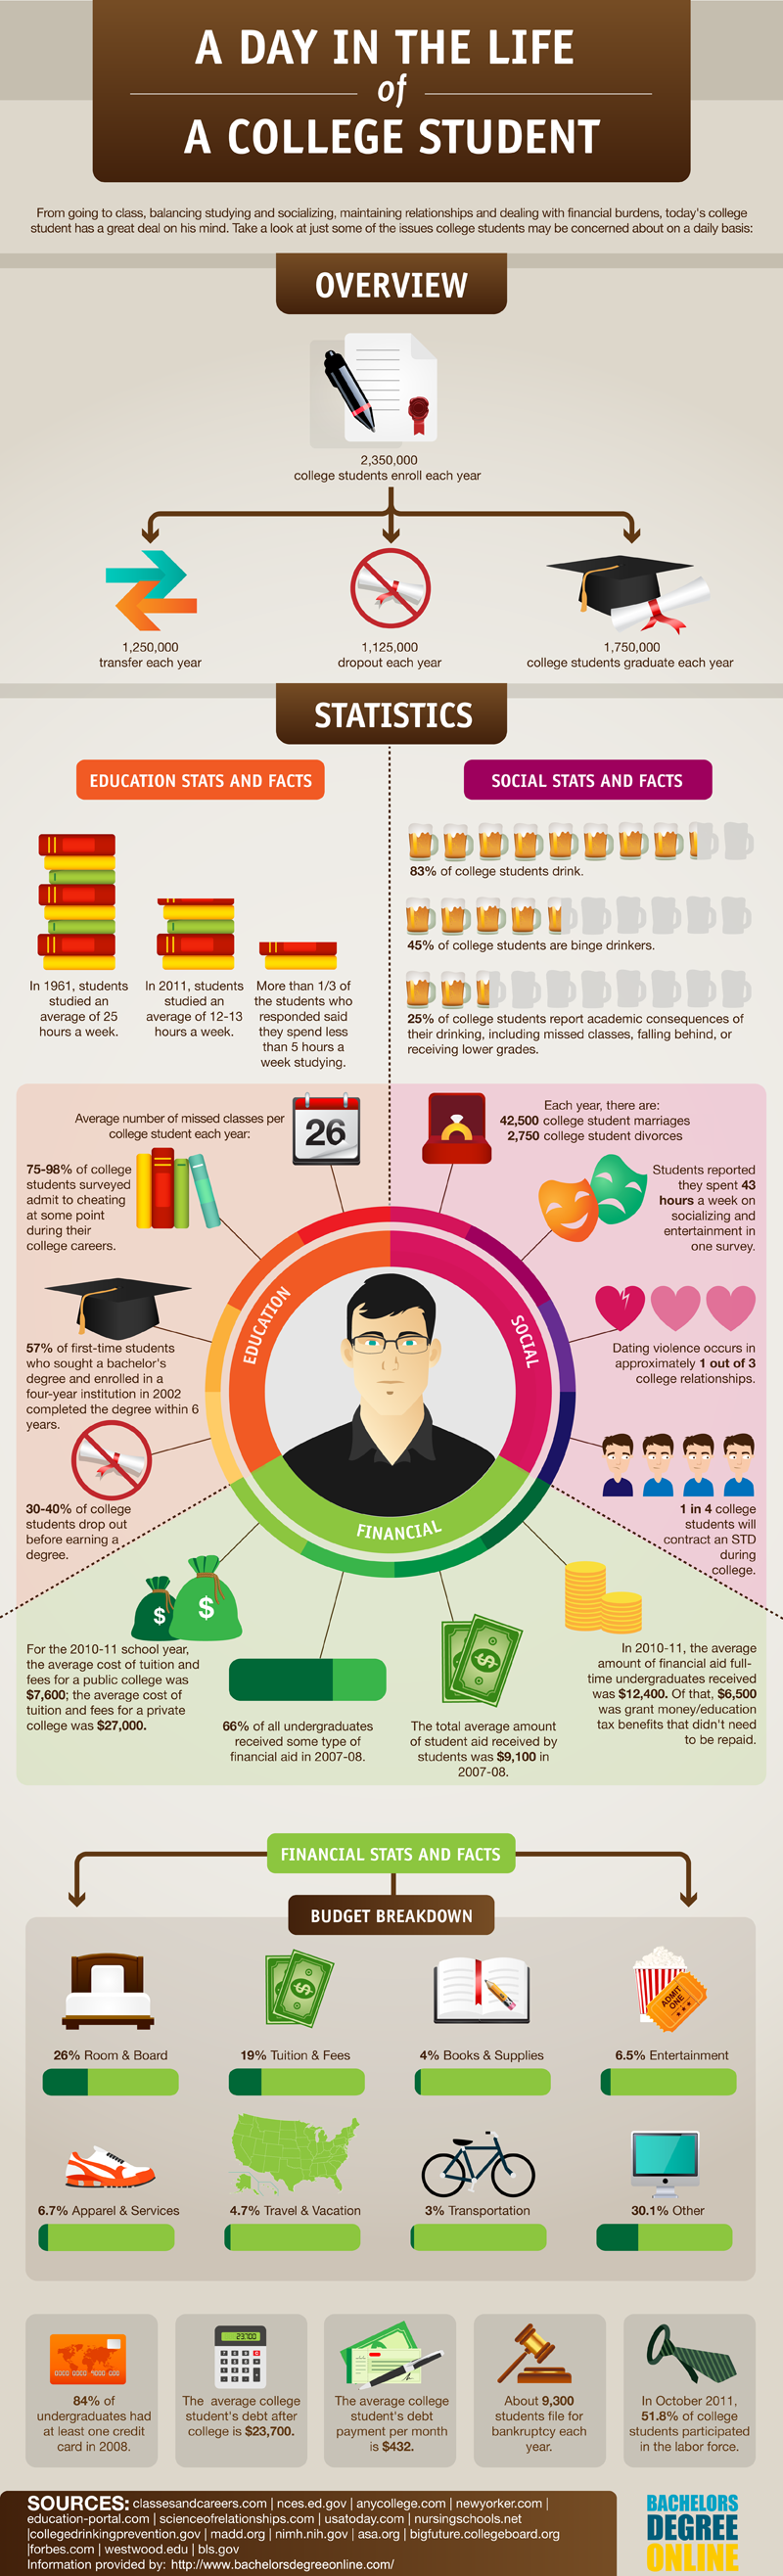 Student Life: An Infographic | whisper down the write alley